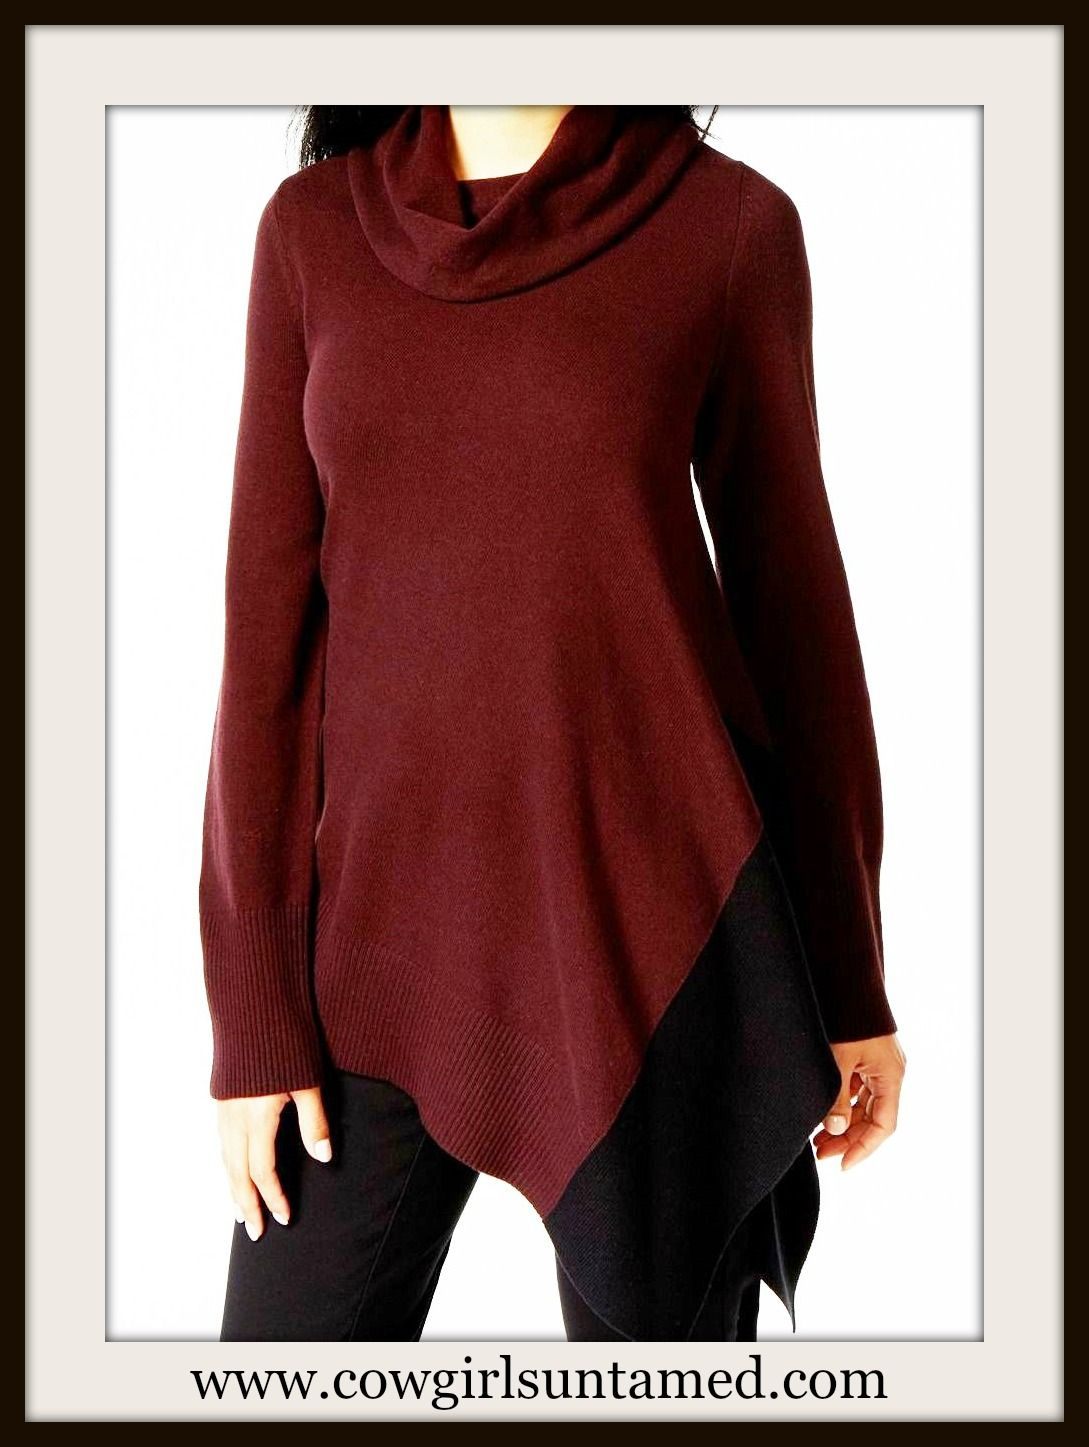 38ff6b58db2 ALFANI SWEATER Wine and Black Cowl Neck Asymmetrical Hem Designer Tunic  Sweater #tunicsweater #wine #burgundy #asymmetrical #sweater #designer  #cowgirl ...